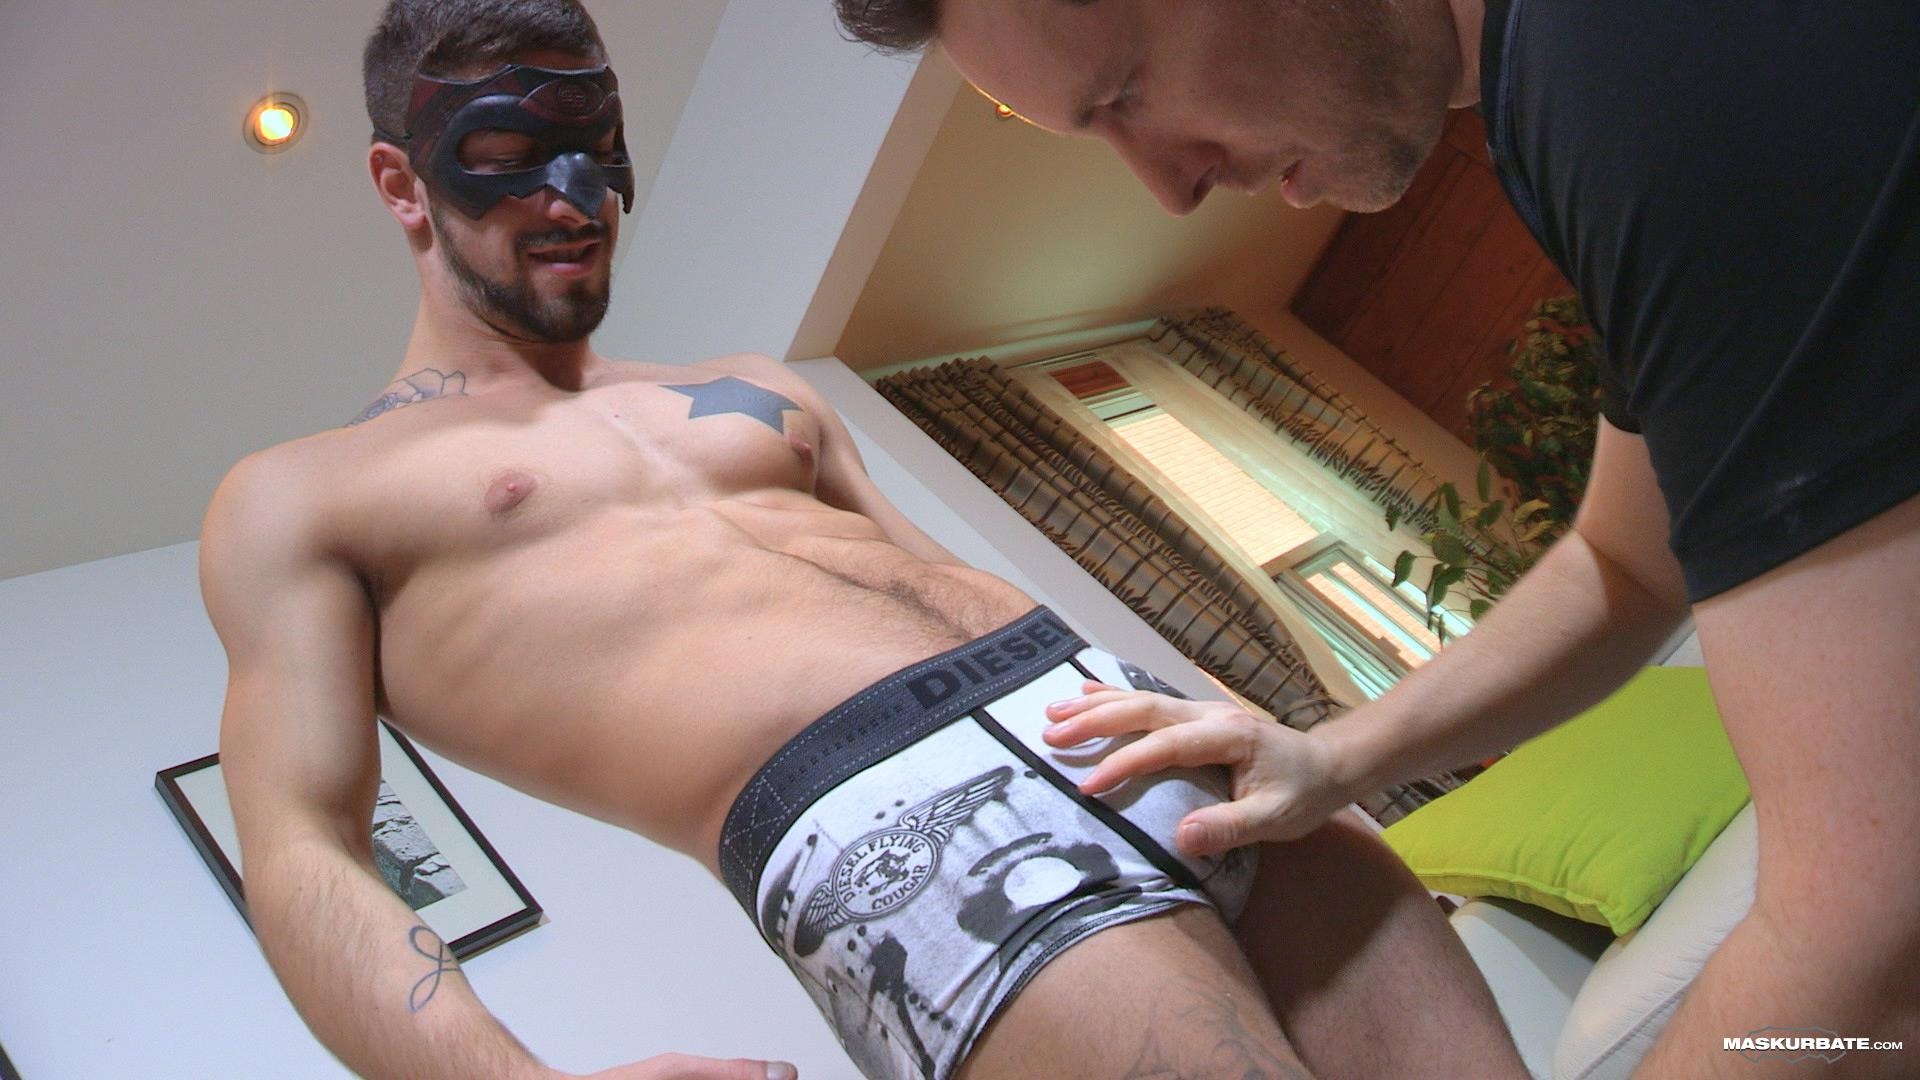 Maskurbate Carl Straight Muscle Jock With A Big Cock Amateur Gay Porn 05 Straight Muscle Hunk Gets His First Blow Job From Another Guy